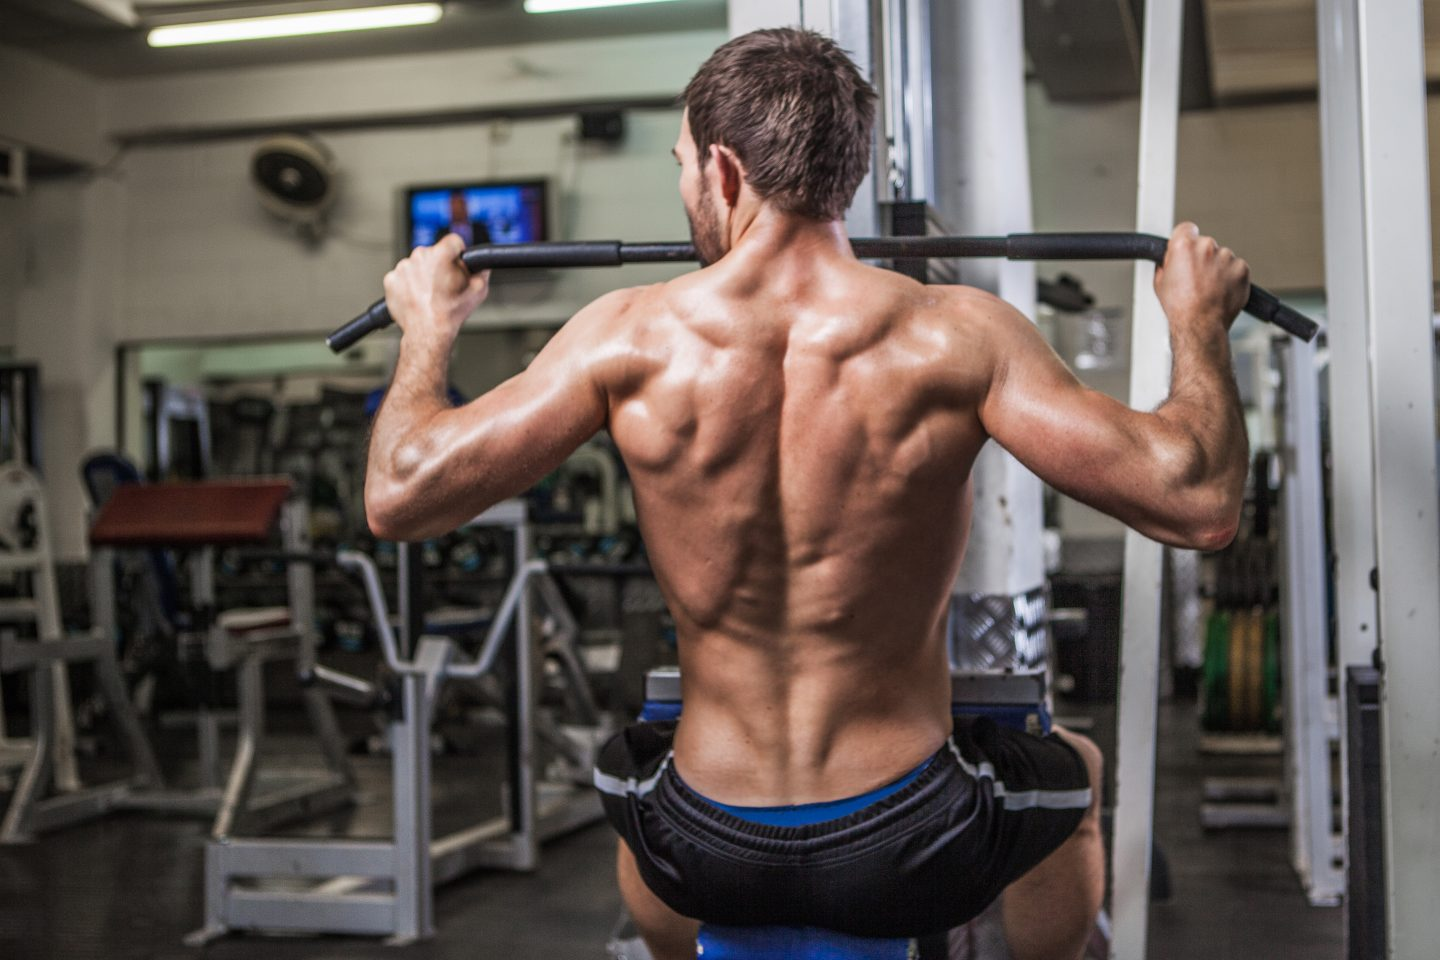 Man working out in the gym. Muscles, back